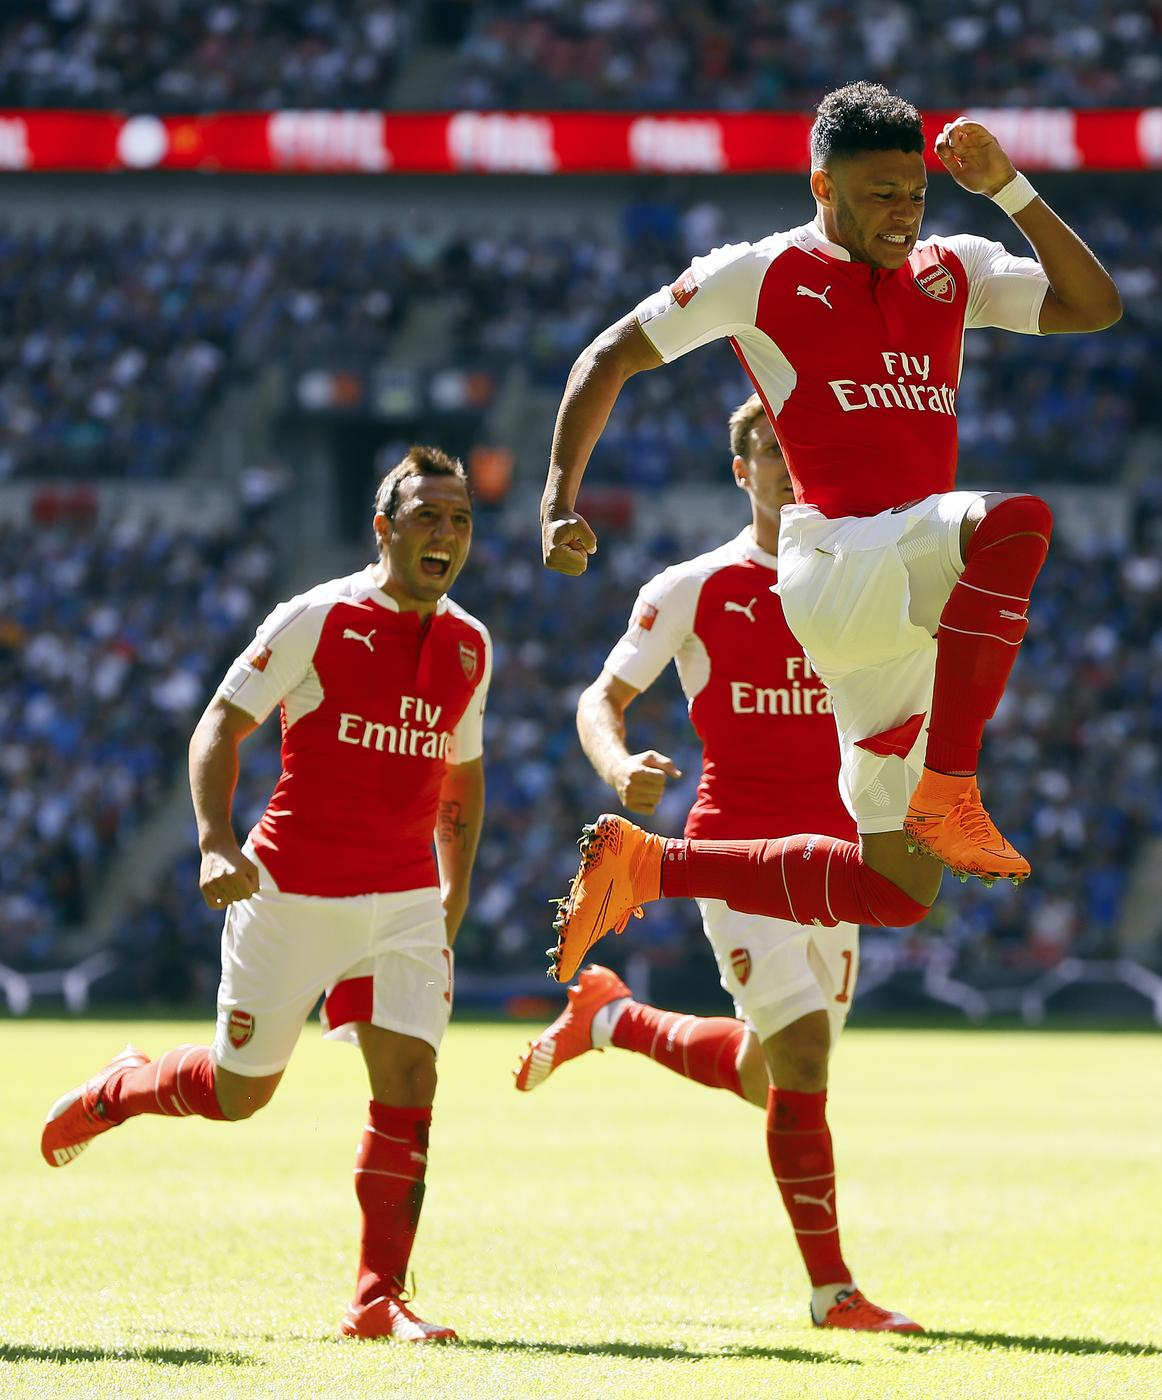 Could this be a career defining season for Arsenal's Alex Oxlade-Chamberlain?